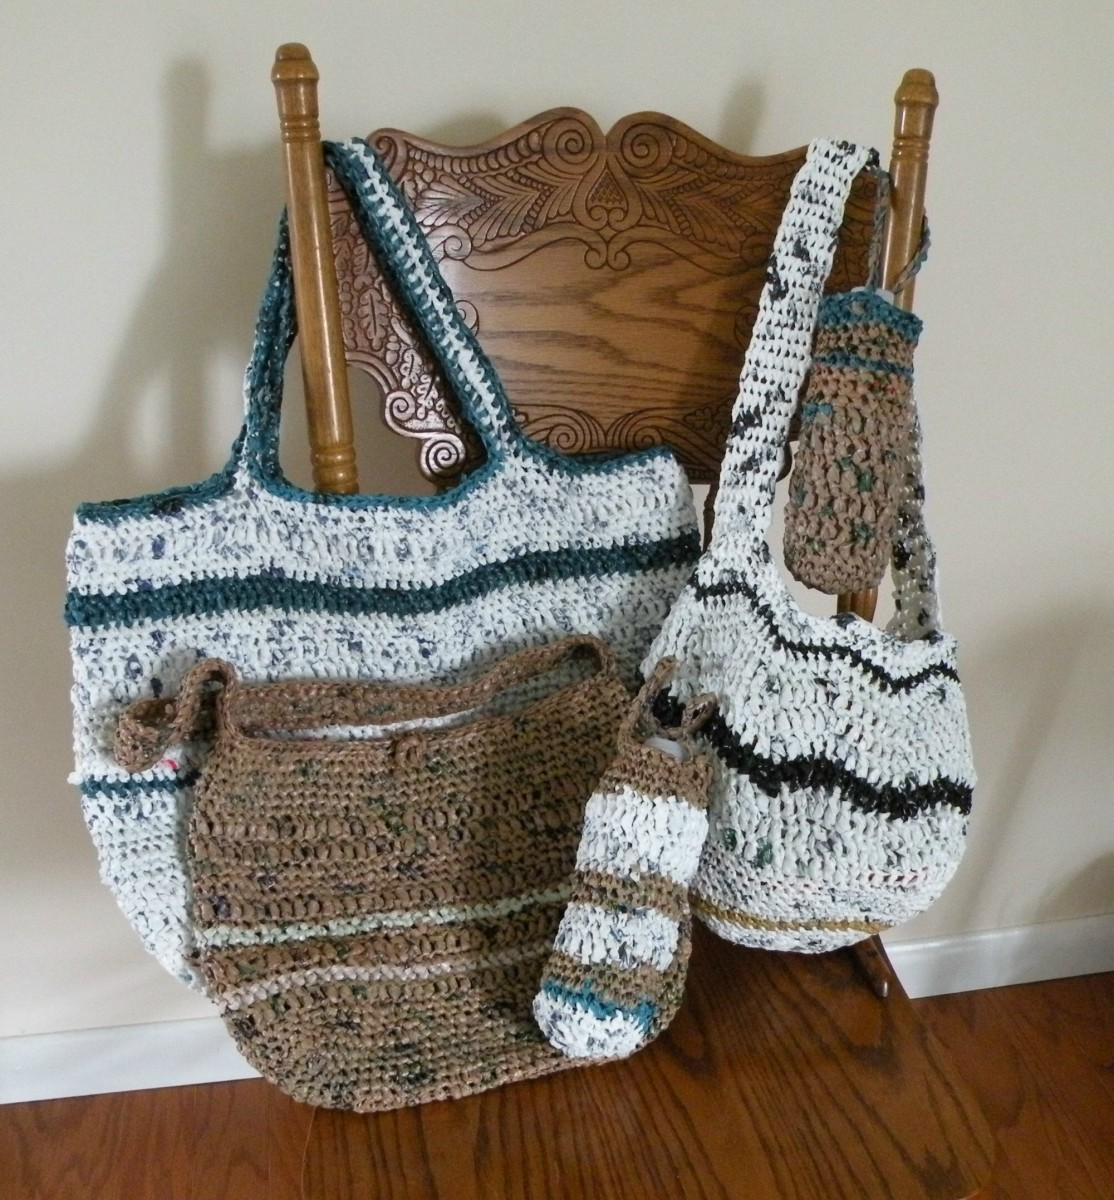 Beach Bag Crochet : Selection of tote bags made from recycle plastic grocery bags.